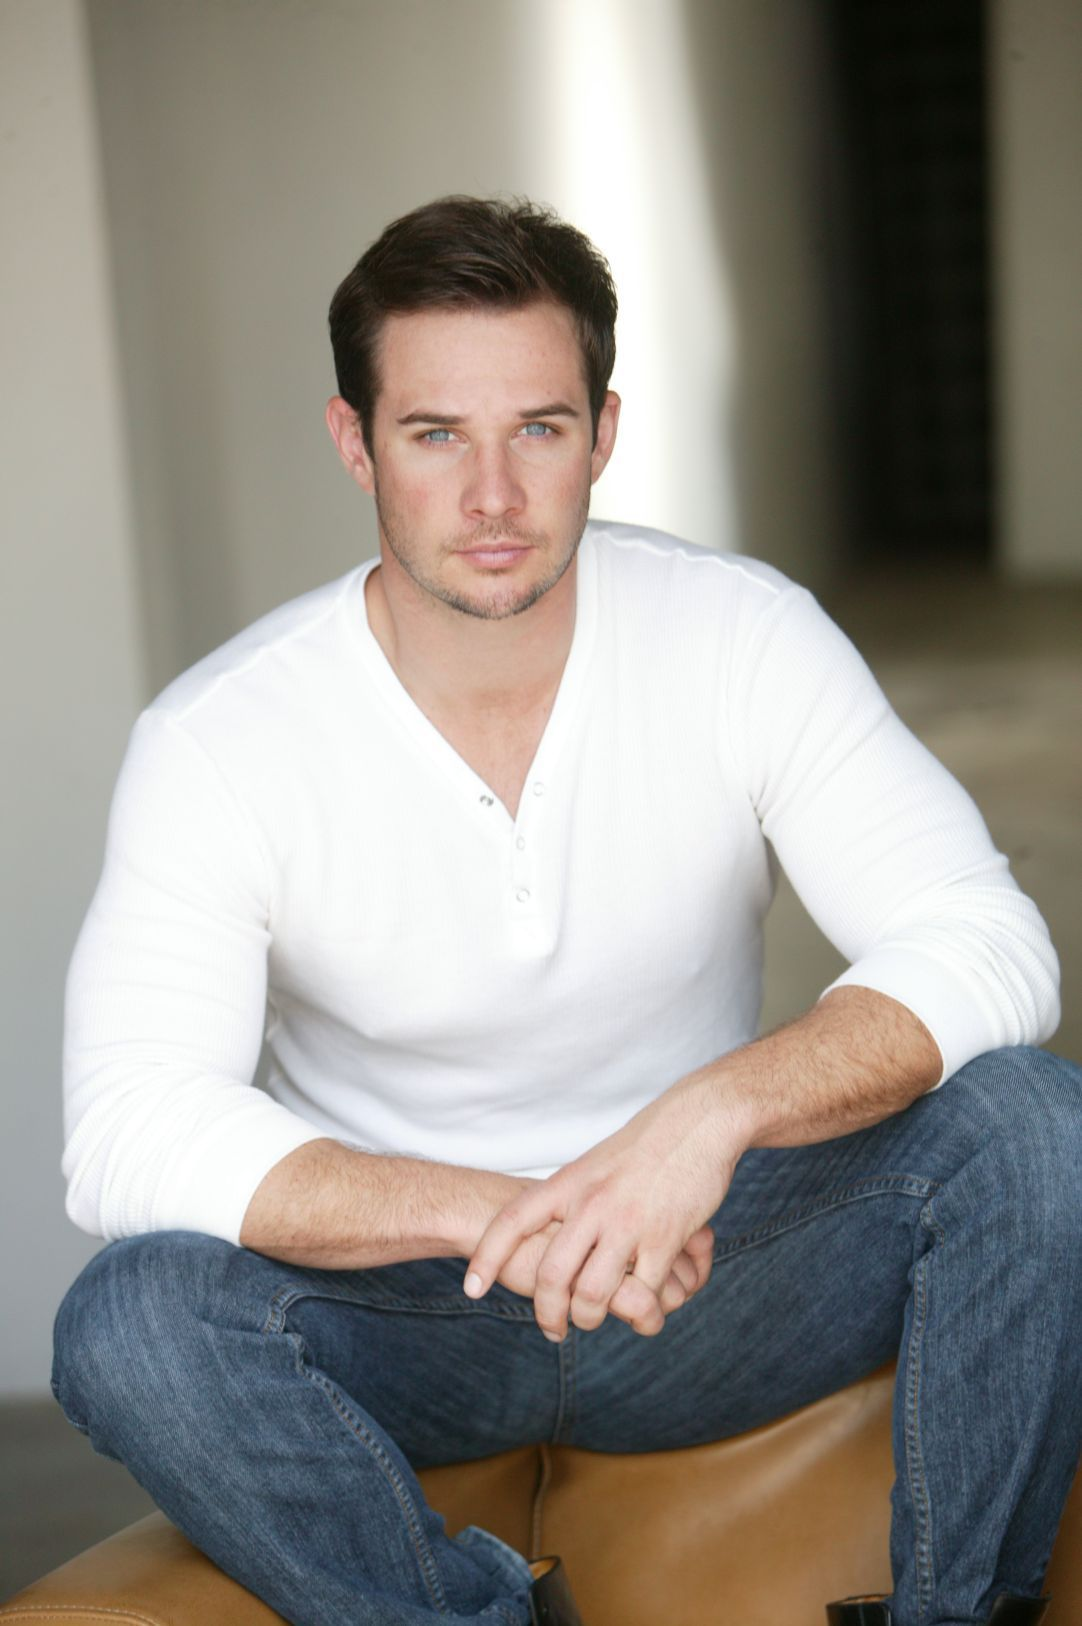 ryan merriman interviewryan merriman pretty little liars, ryan merriman 2 years of love, ryan merriman facebook, ryan merriman wikipedia, ryan merriman instagram, ryan merriman disney channel, ryan merriman interview, ryan merriman, ryan merriman twitter, ryan merriman 2015, ryan merriman kristen mcmullen, ryan merriman 2016, ryan merriman biography, ryan merriman imdb, ryan merriman net worth, ryan merriman movies, ryan merriman wife, ryan merriman disney, ryan merriman movies and tv shows, ryan merriman gay